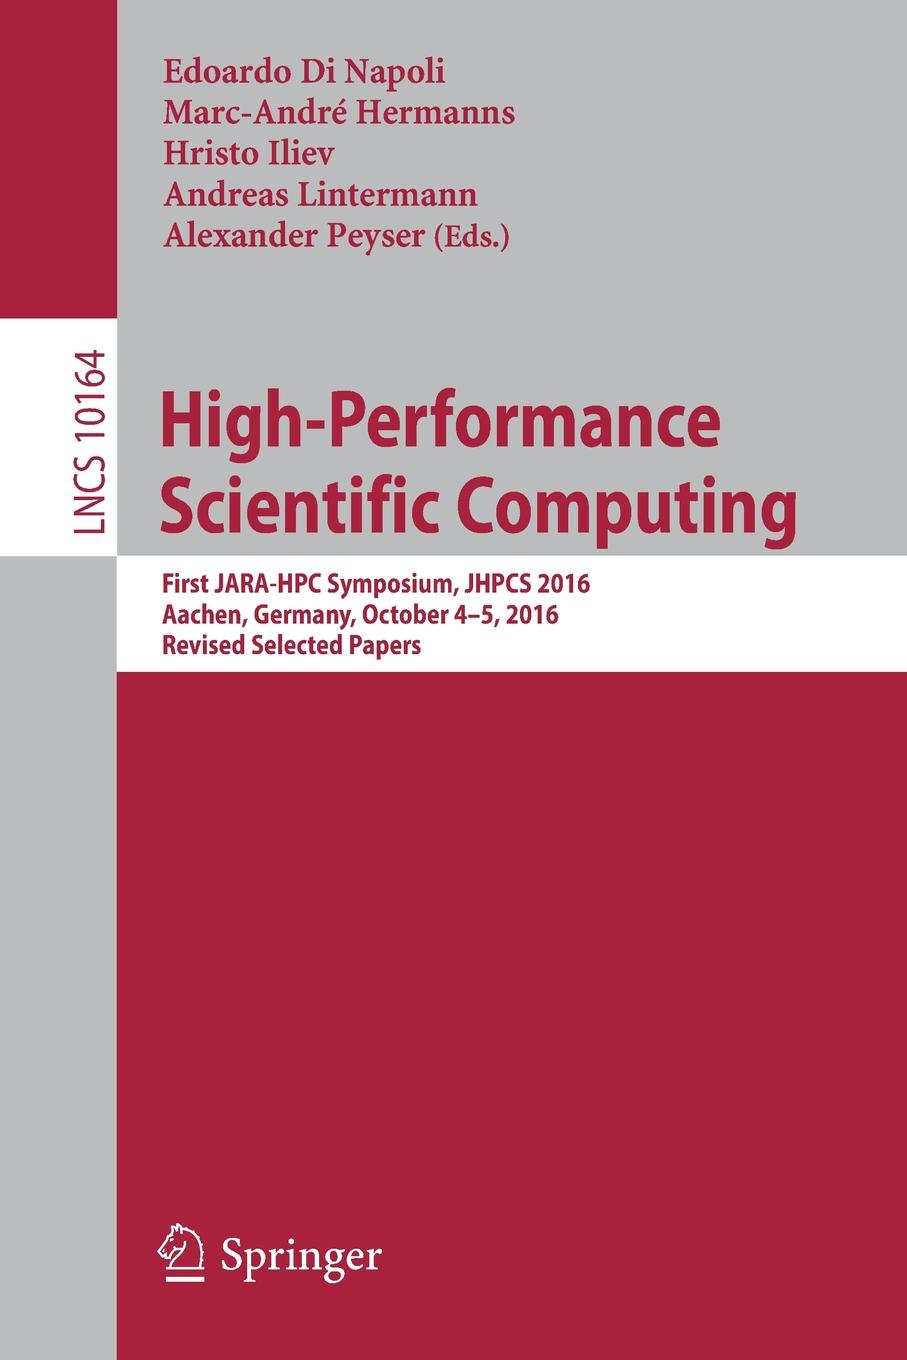 High-Performance Scientific Computing. First JARA-HPC Symposium, JHPCS 2016, Aachen, Germany, October 4-5, 2016, Revised Selected Papers цены онлайн